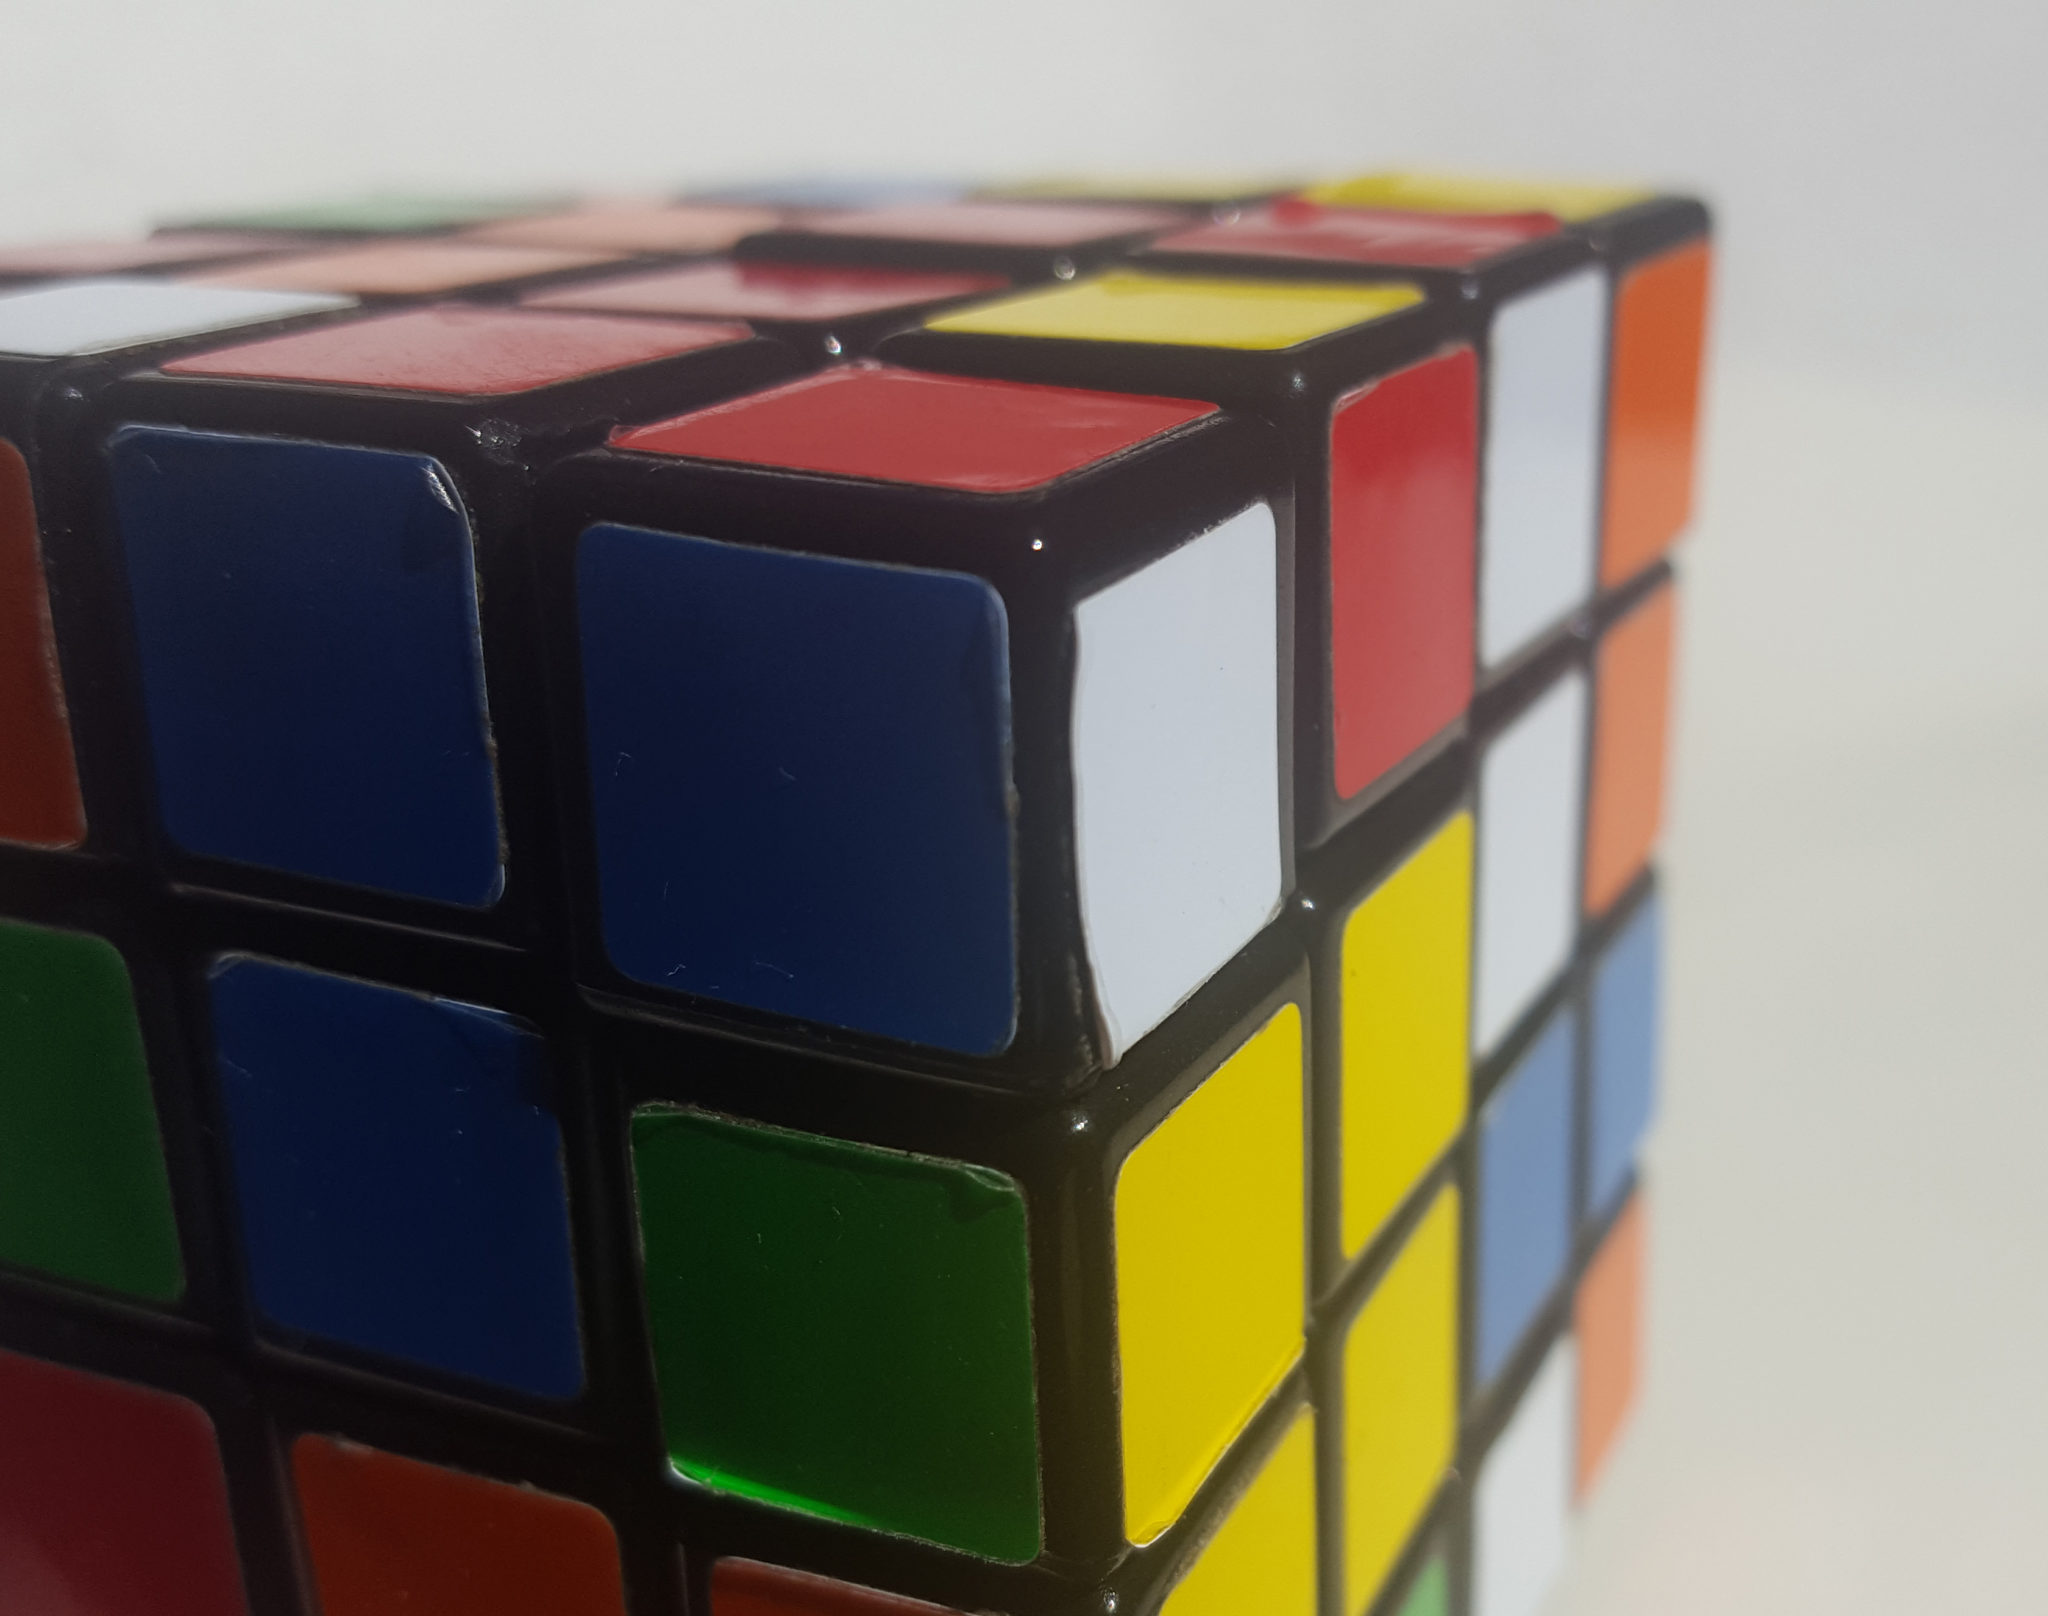 rubik's 4x4 sticker